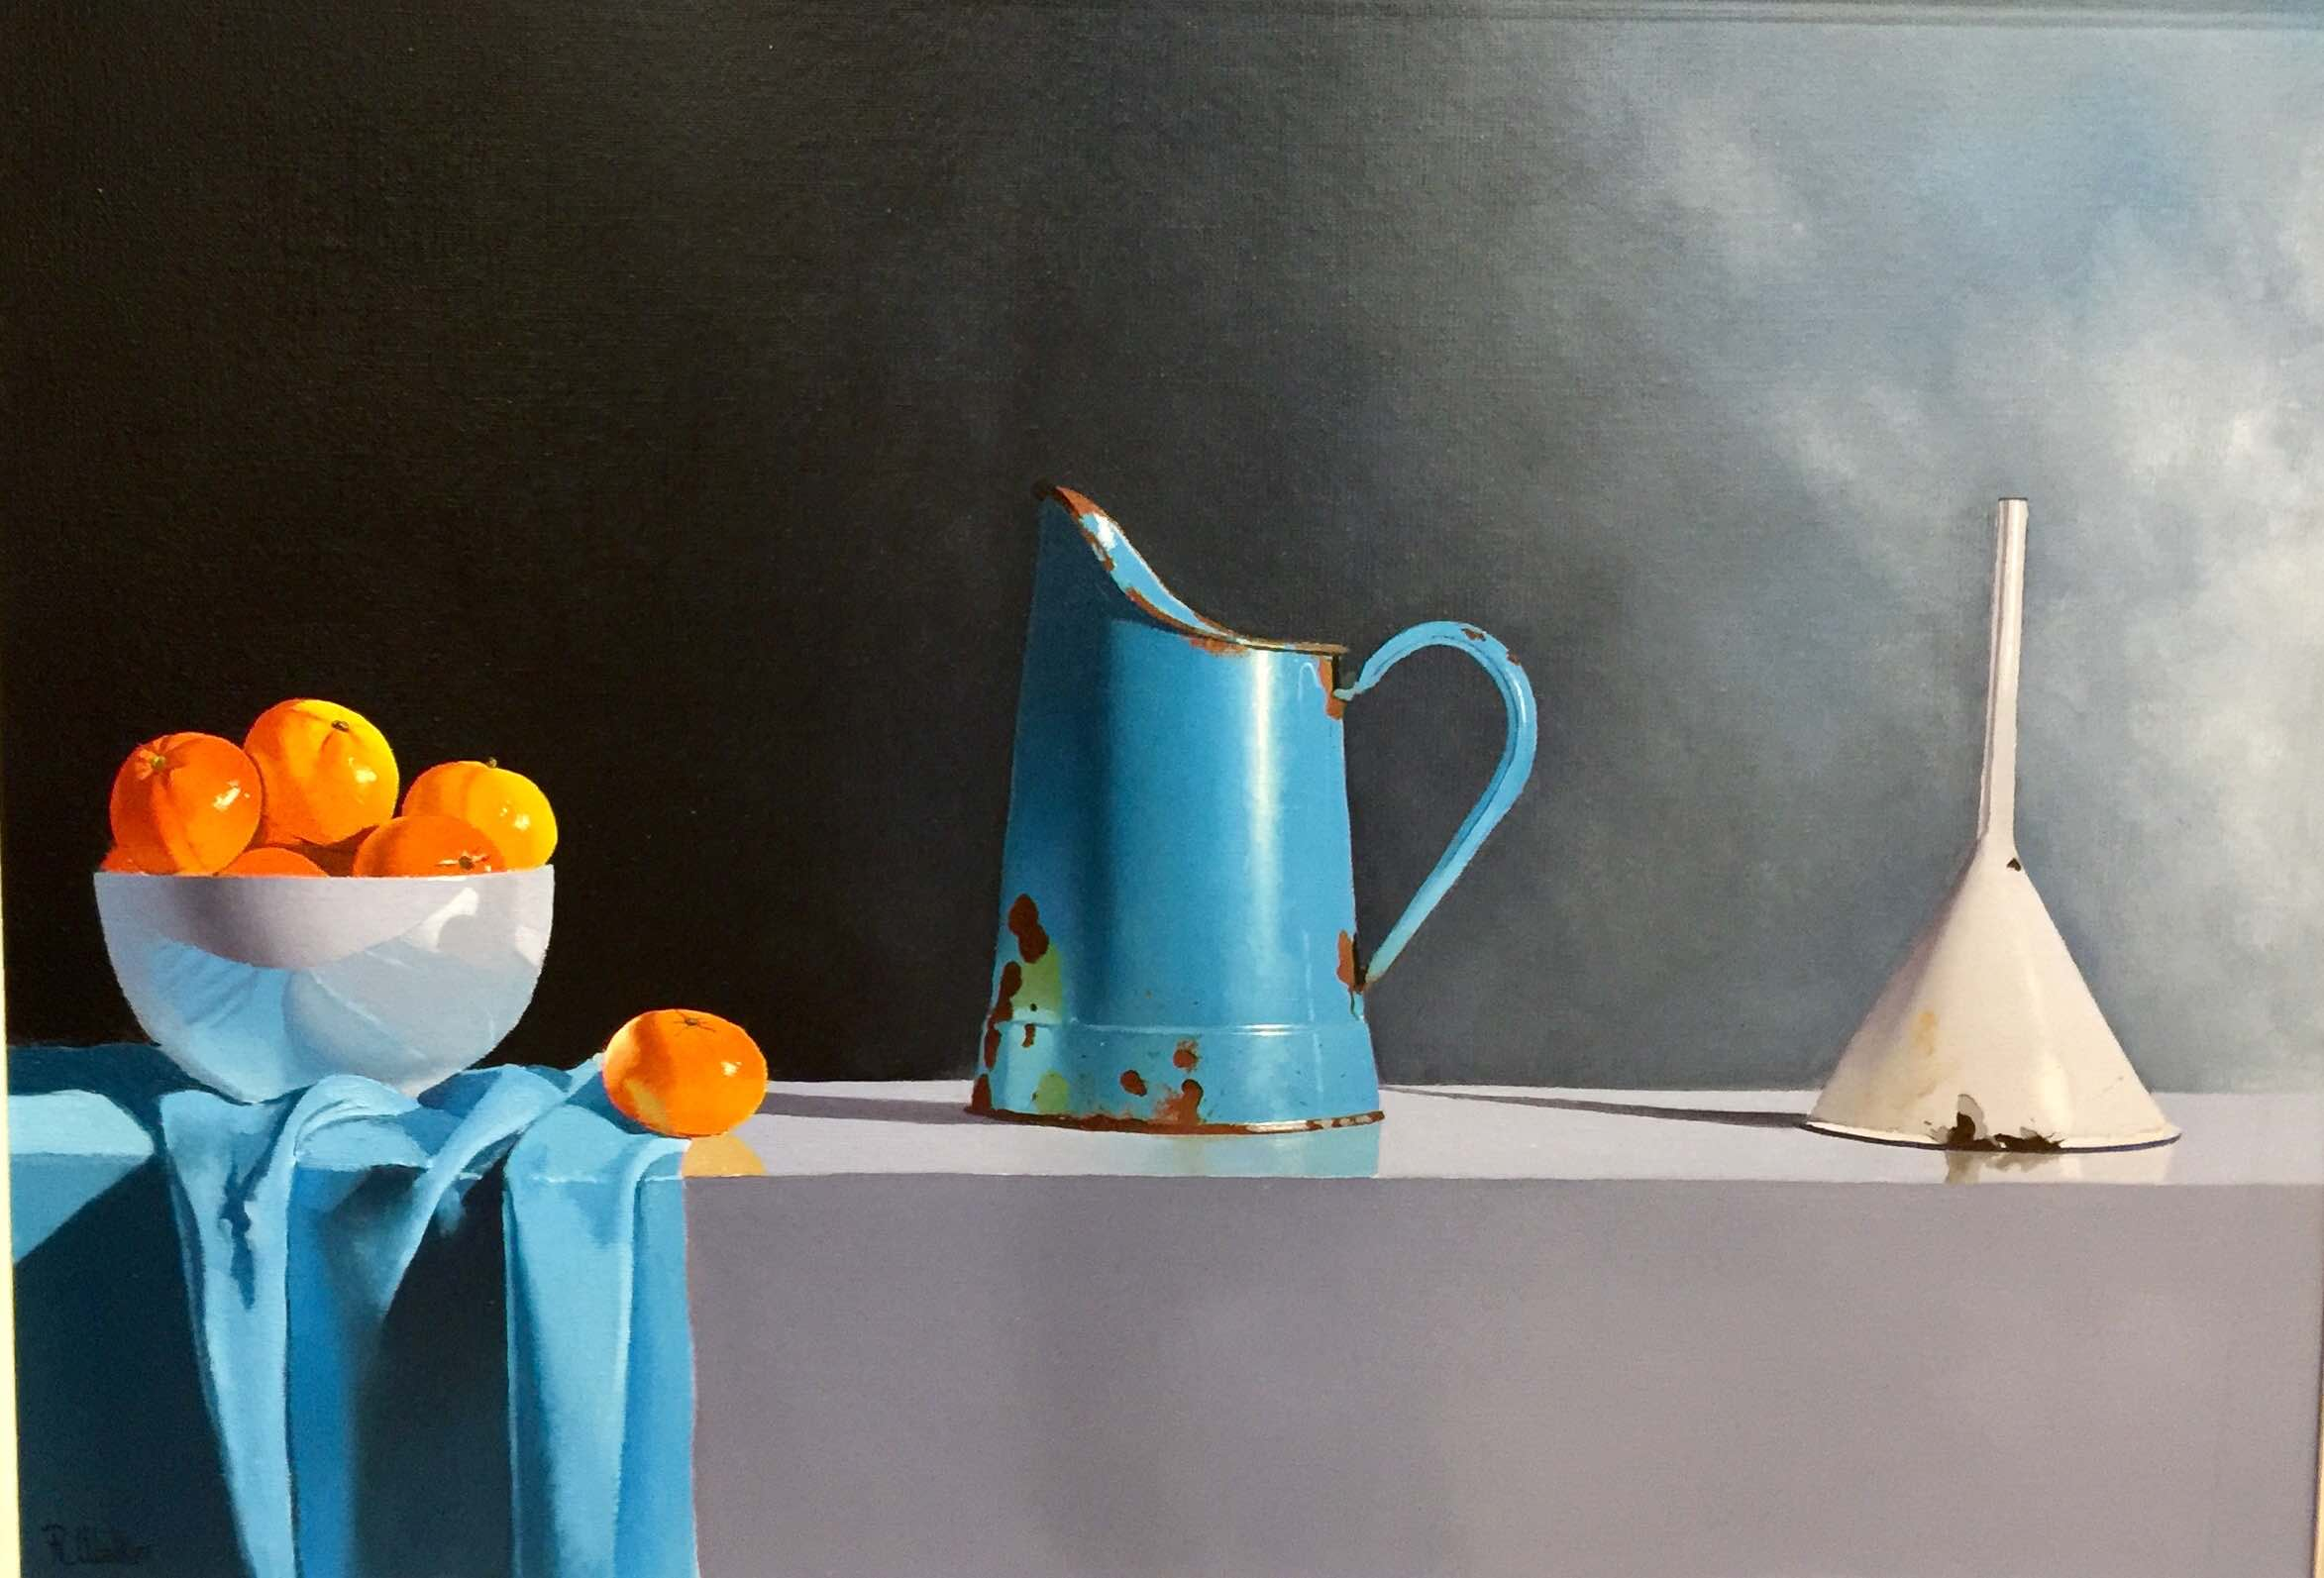 <span class=&#34;link fancybox-details-link&#34;><a href=&#34;/artists/67-robert-walker/works/2783-robert-walker-turquoise-jug-and-clementines/&#34;>View Detail Page</a></span><div class=&#34;artist&#34;><strong>Robert Walker</strong></div> <div class=&#34;title&#34;><em>Turquoise Jug and Clementines </em></div> <div class=&#34;medium&#34;>Oil on Linen</div> <div class=&#34;dimensions&#34;>46 x 61 cm </div>